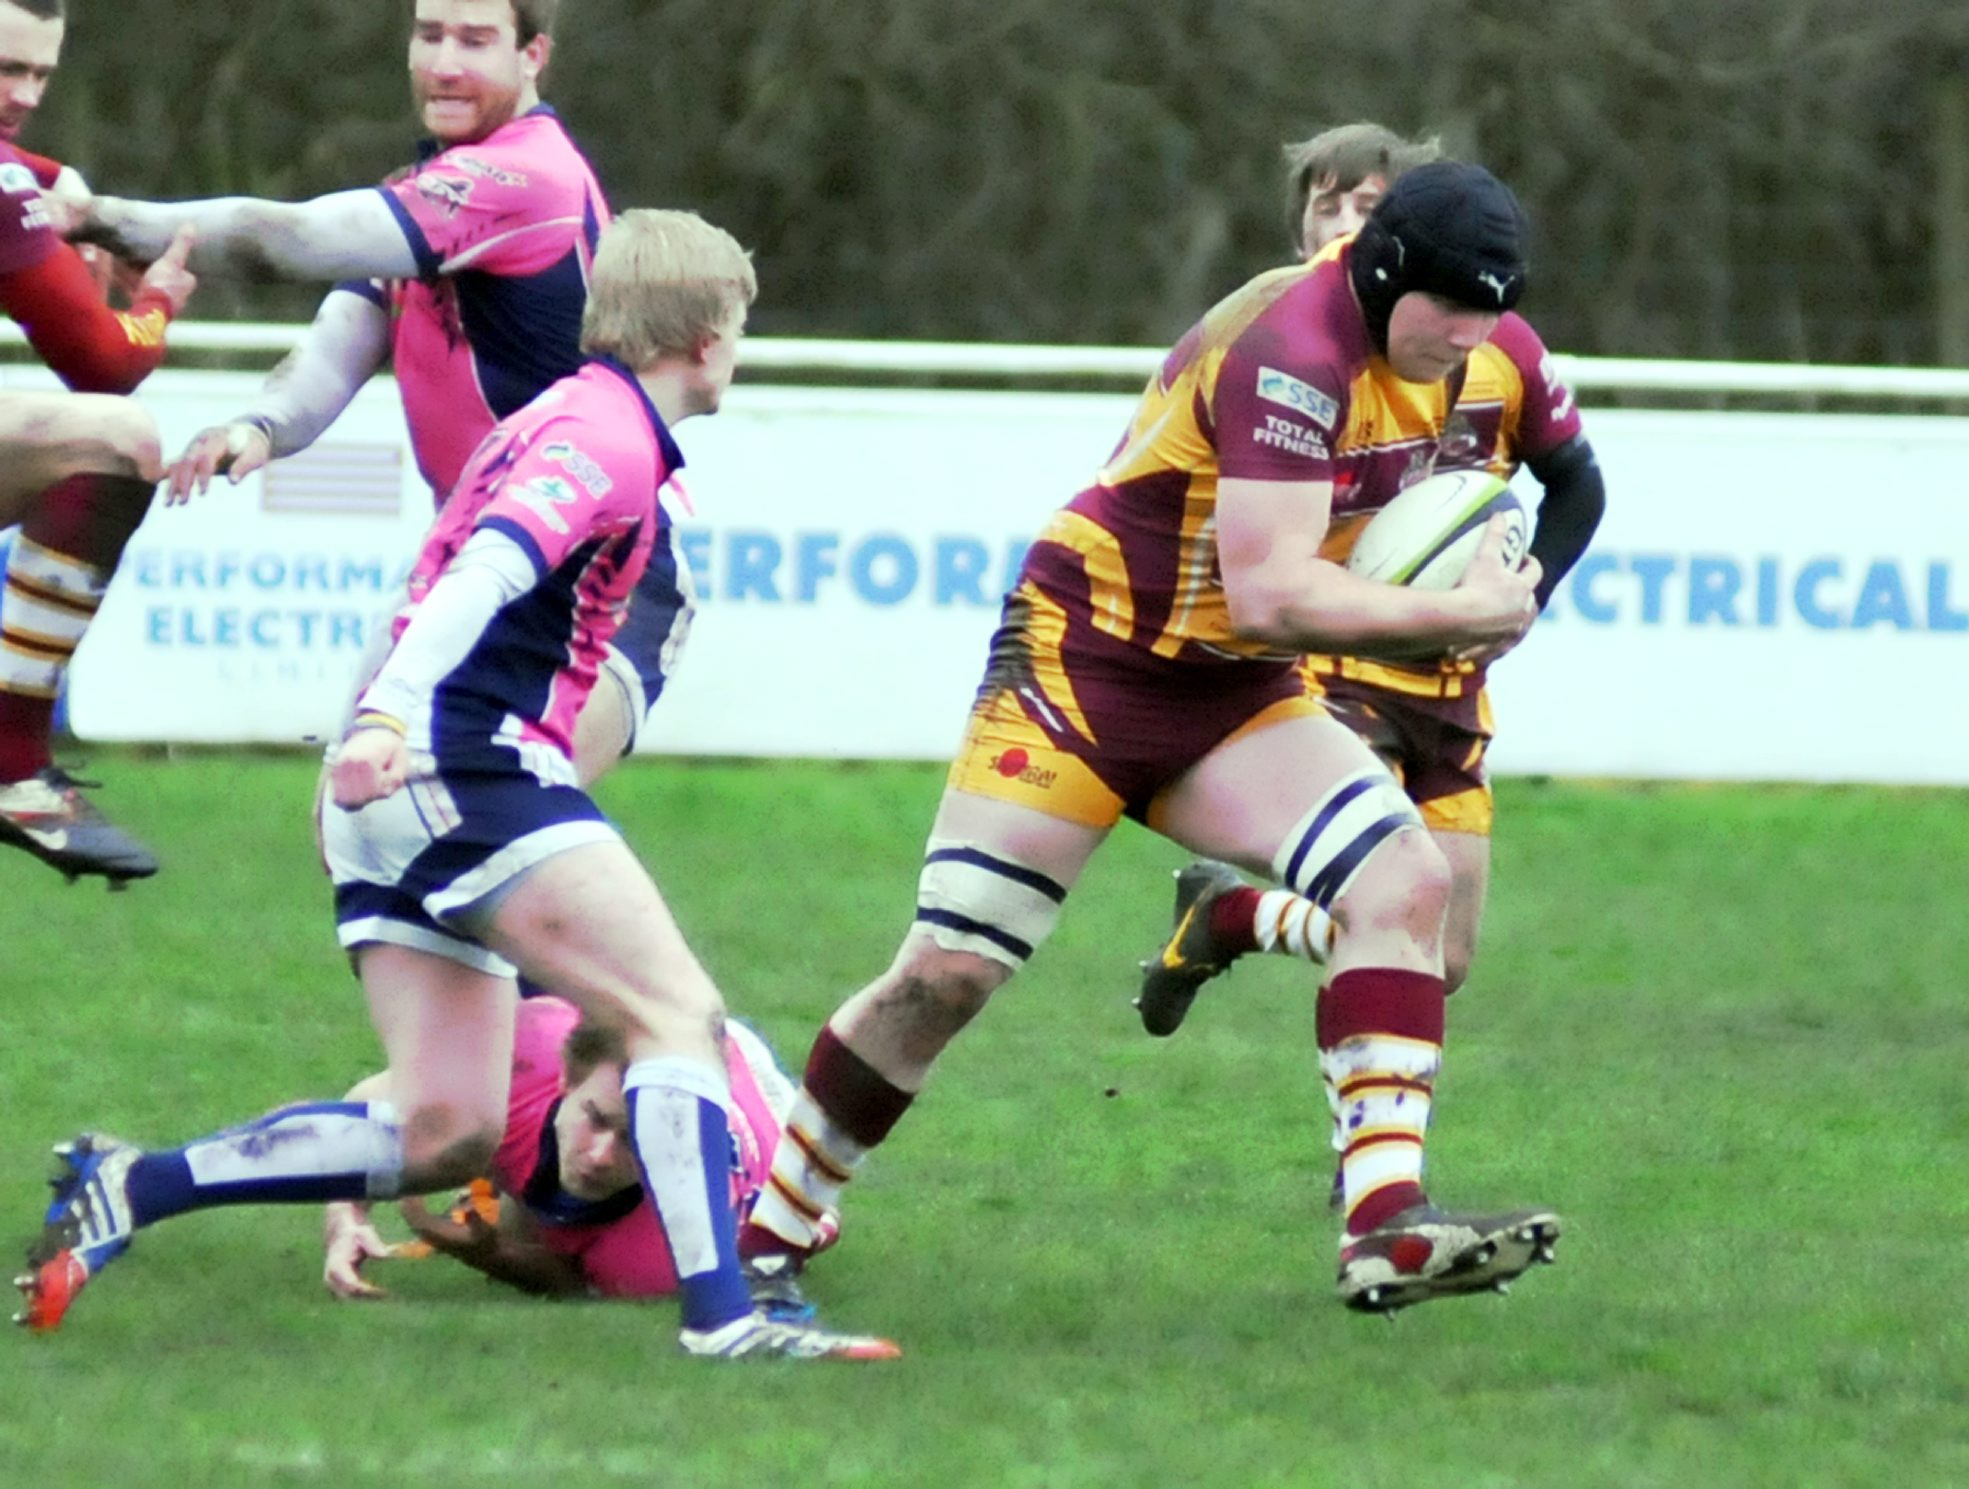 Sedgley's Matt Lamprey scored two tries at Bromsgrove